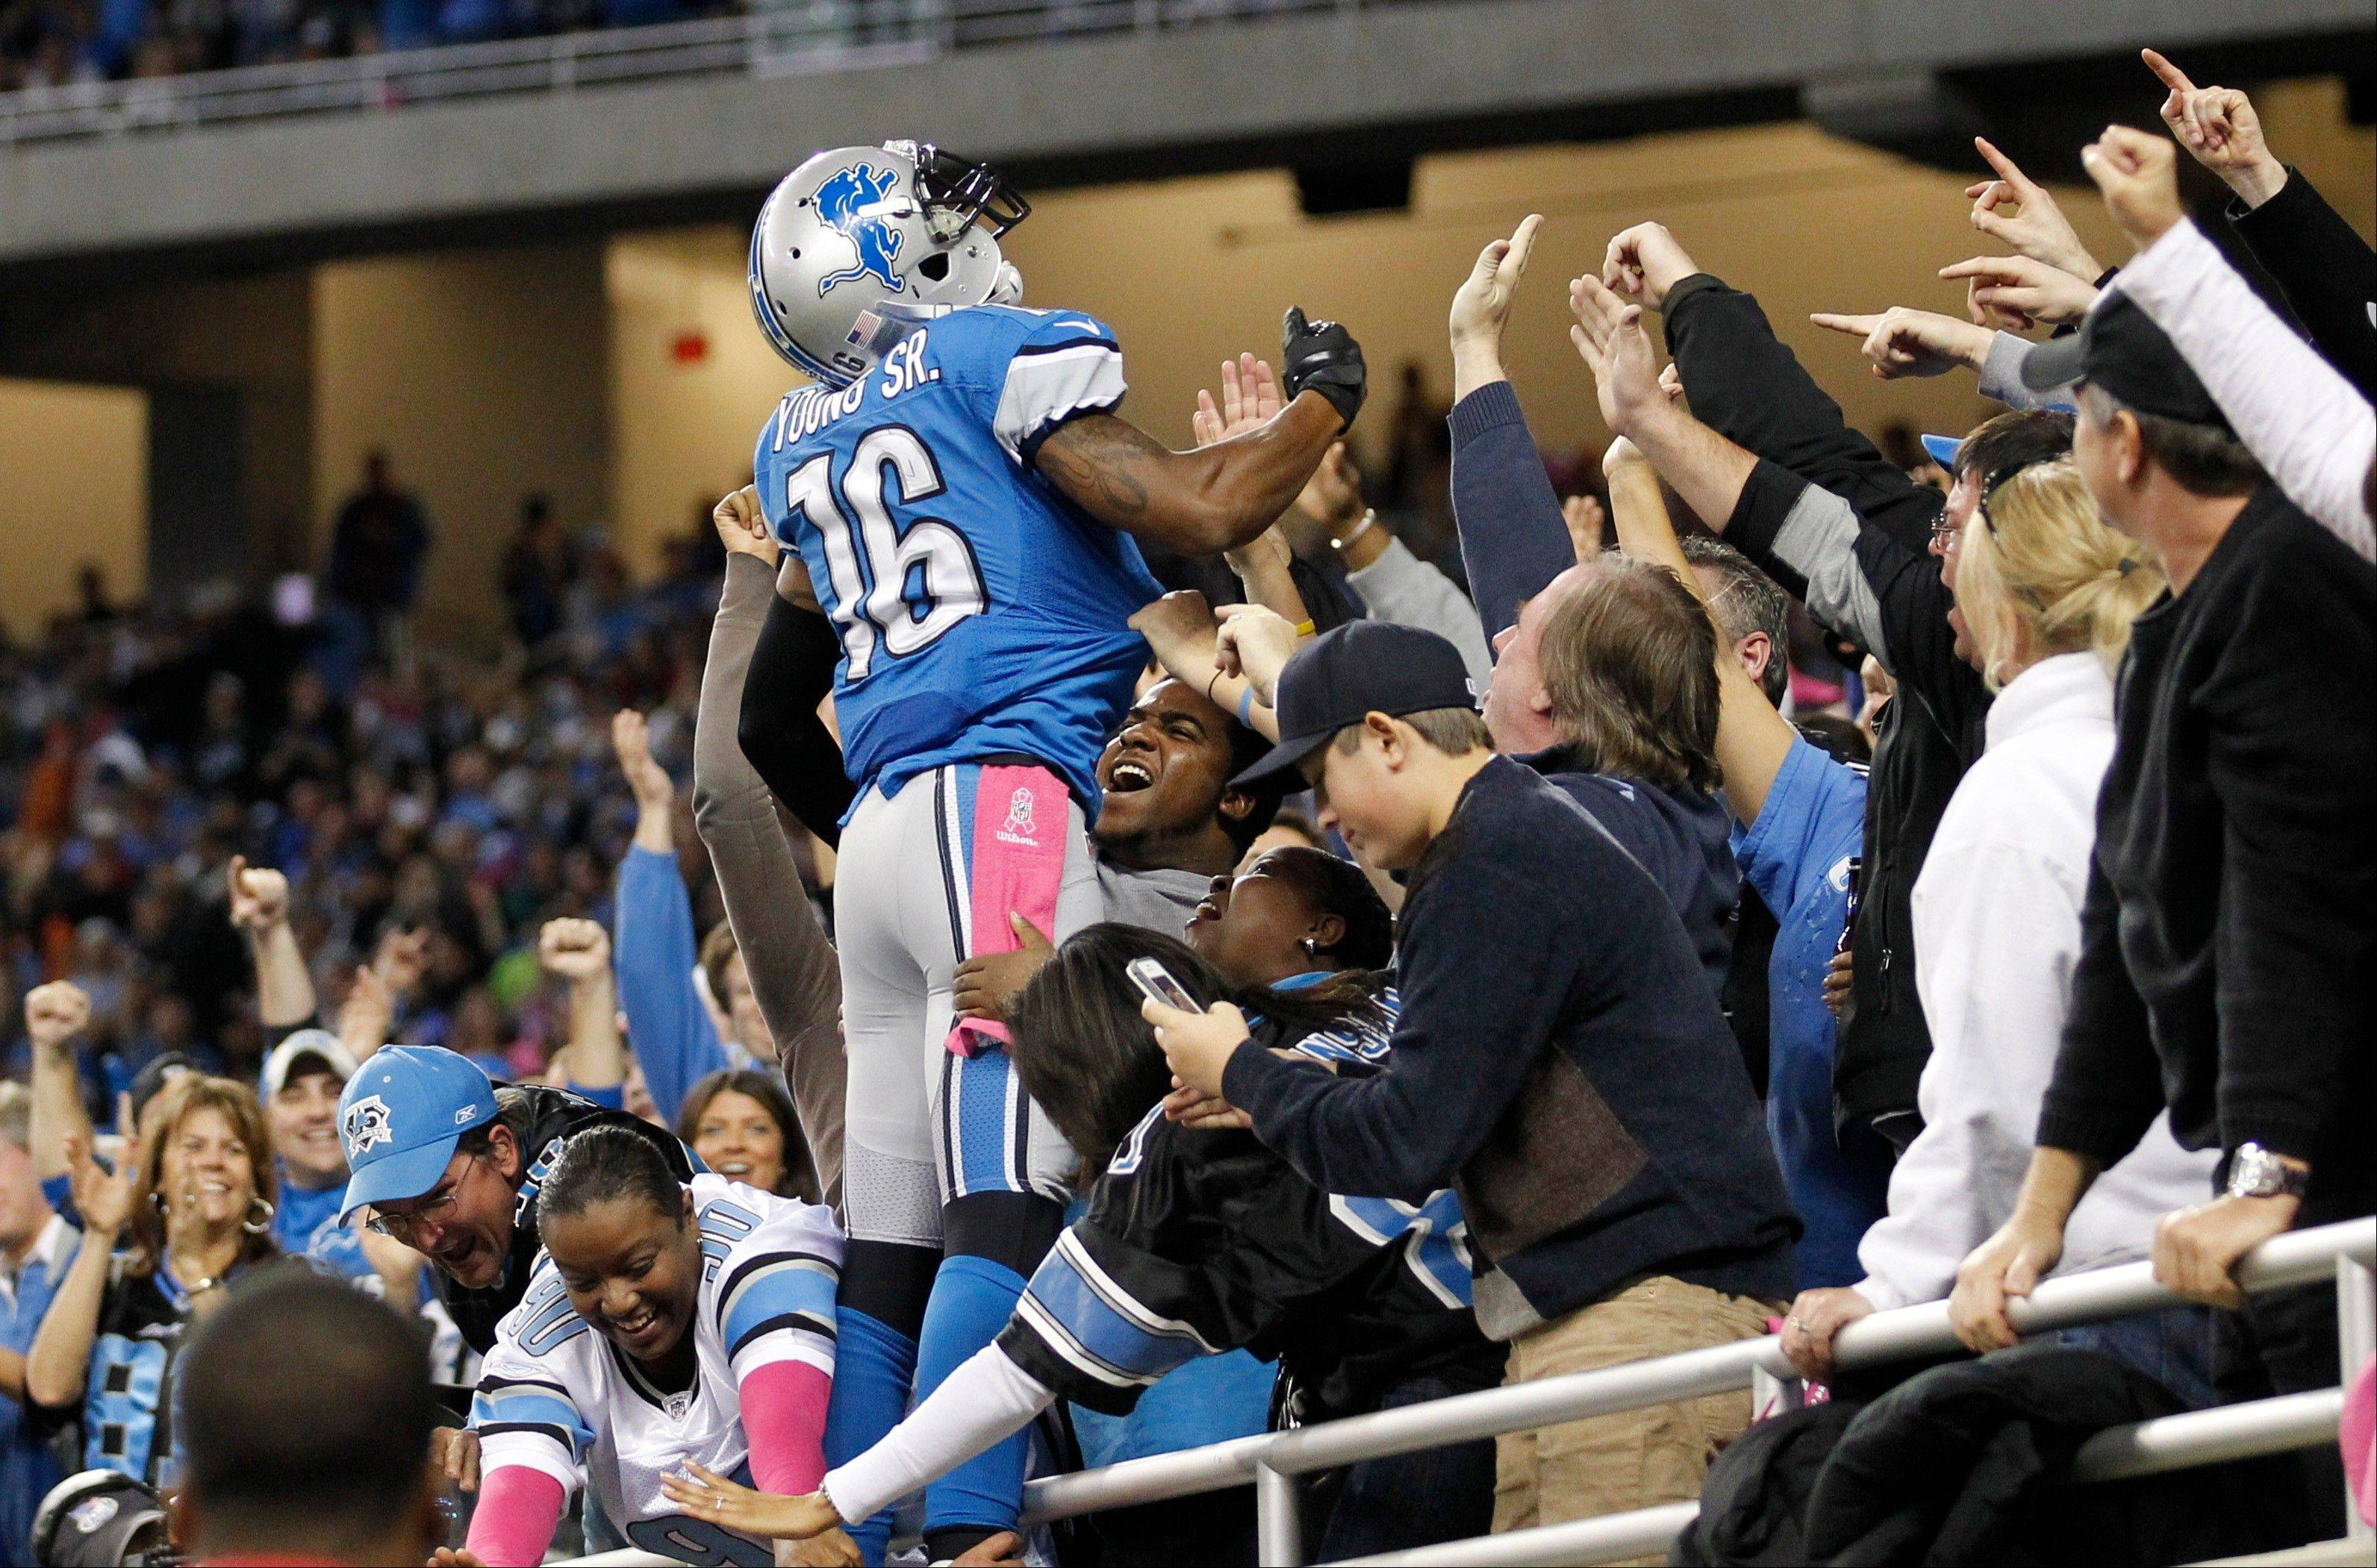 Lions WR Titus Young isn't flying under radar now